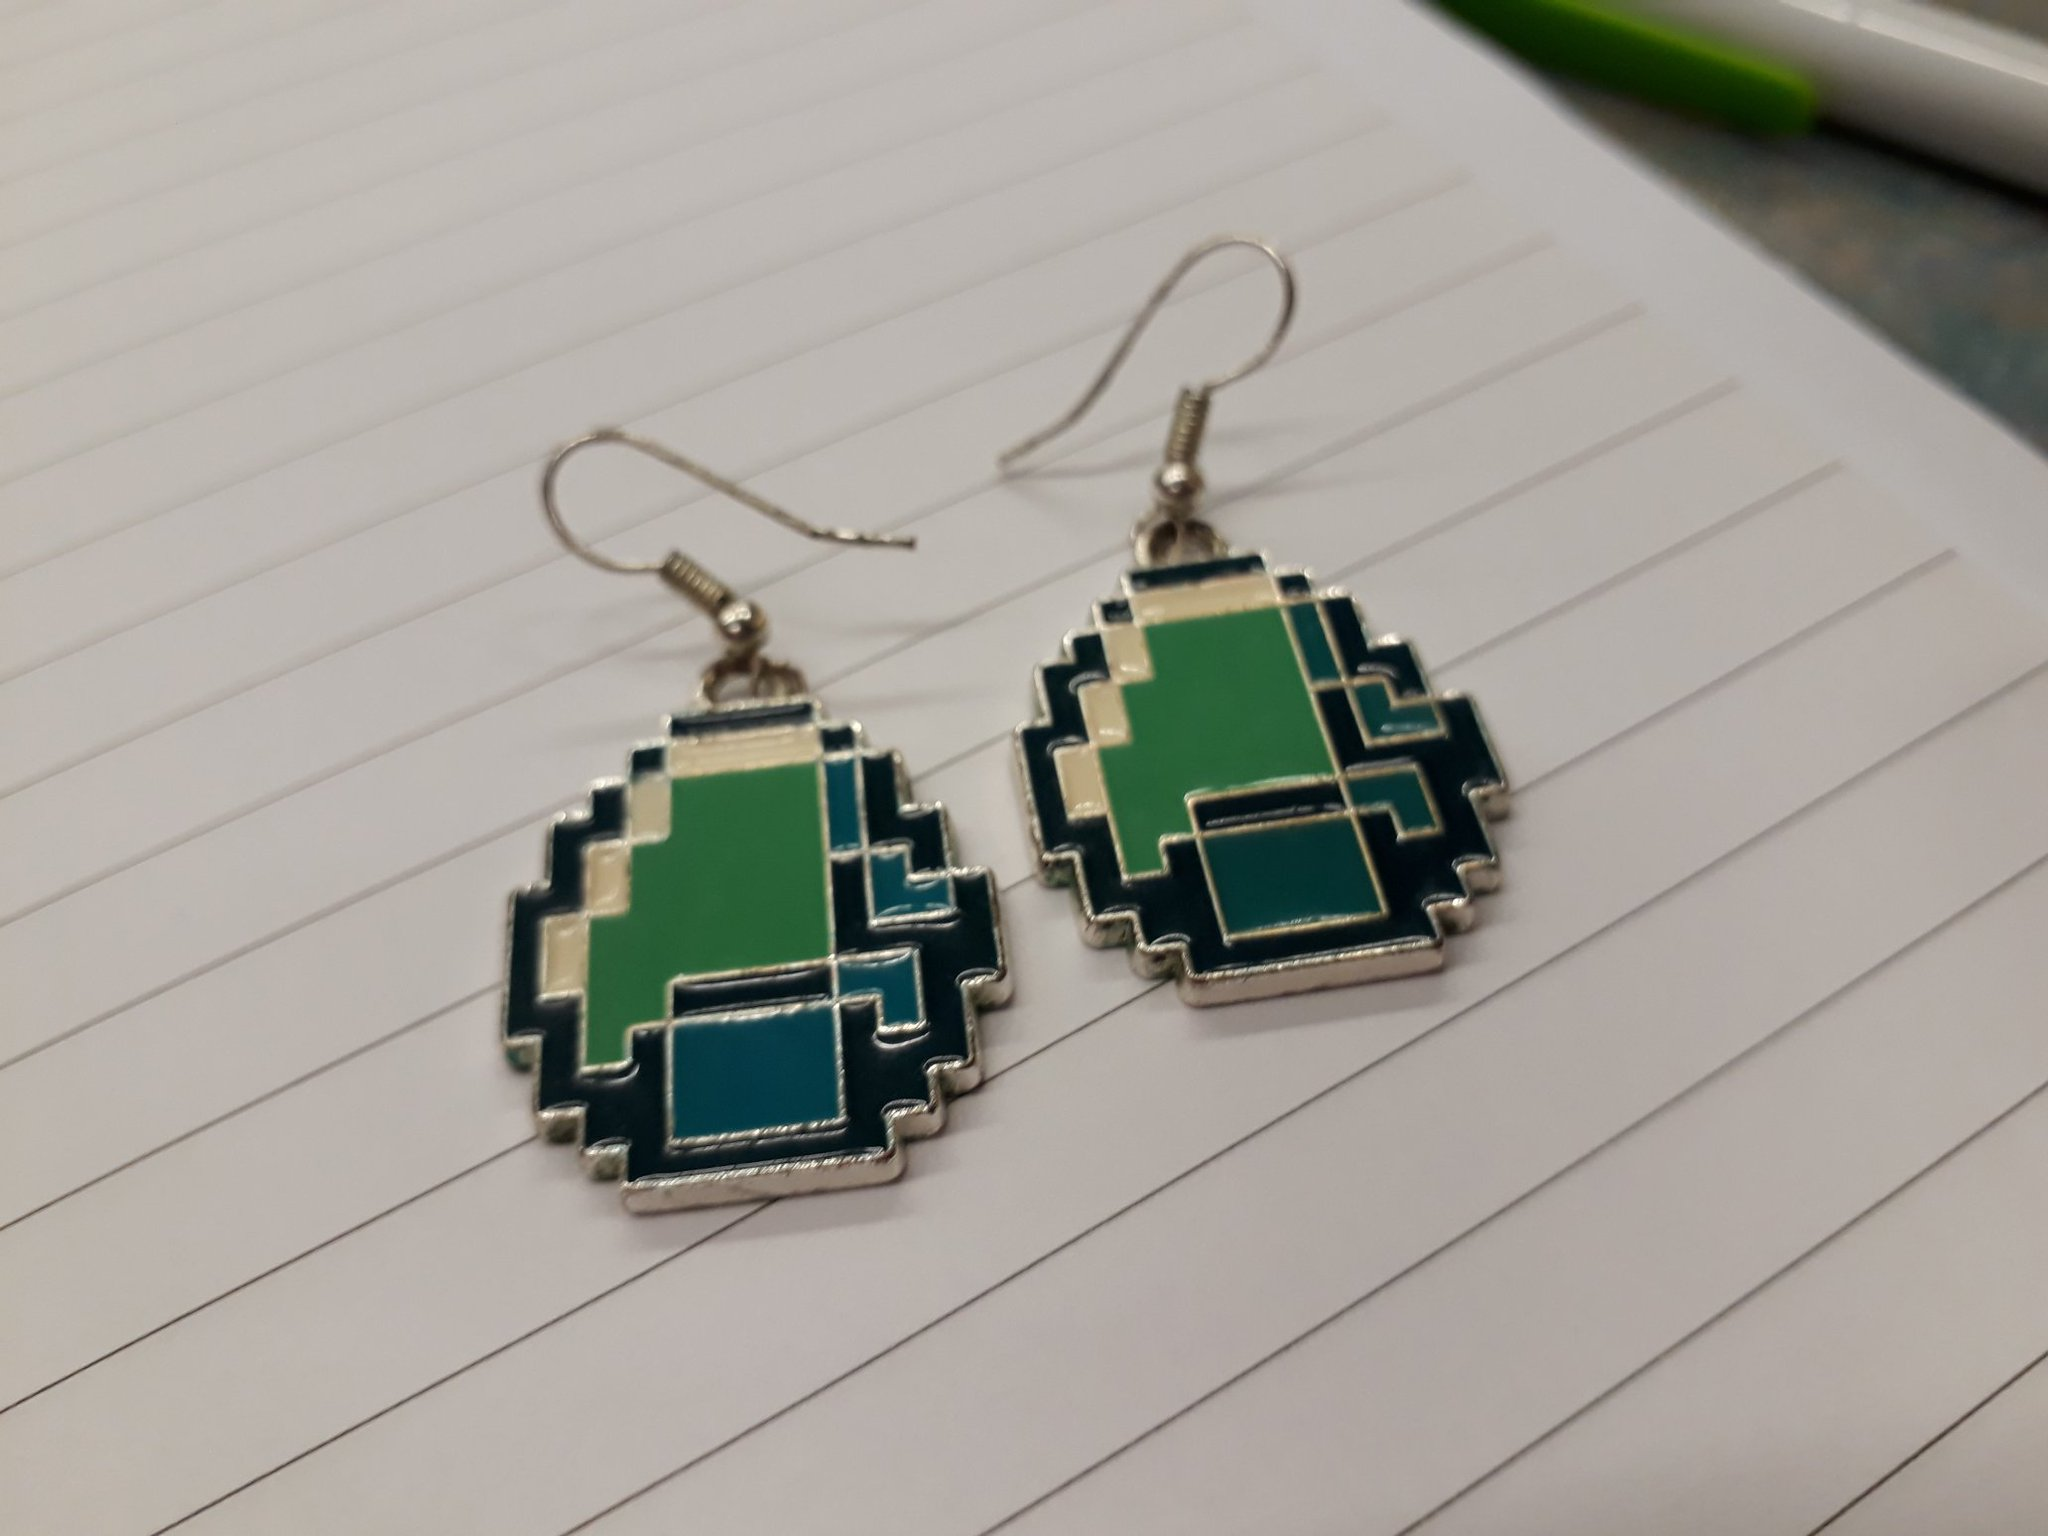 Rocking my favourite diamond earrings as I get ready to mine for more gems here at the last day of #slanza17 https://t.co/0l9QUJktAS